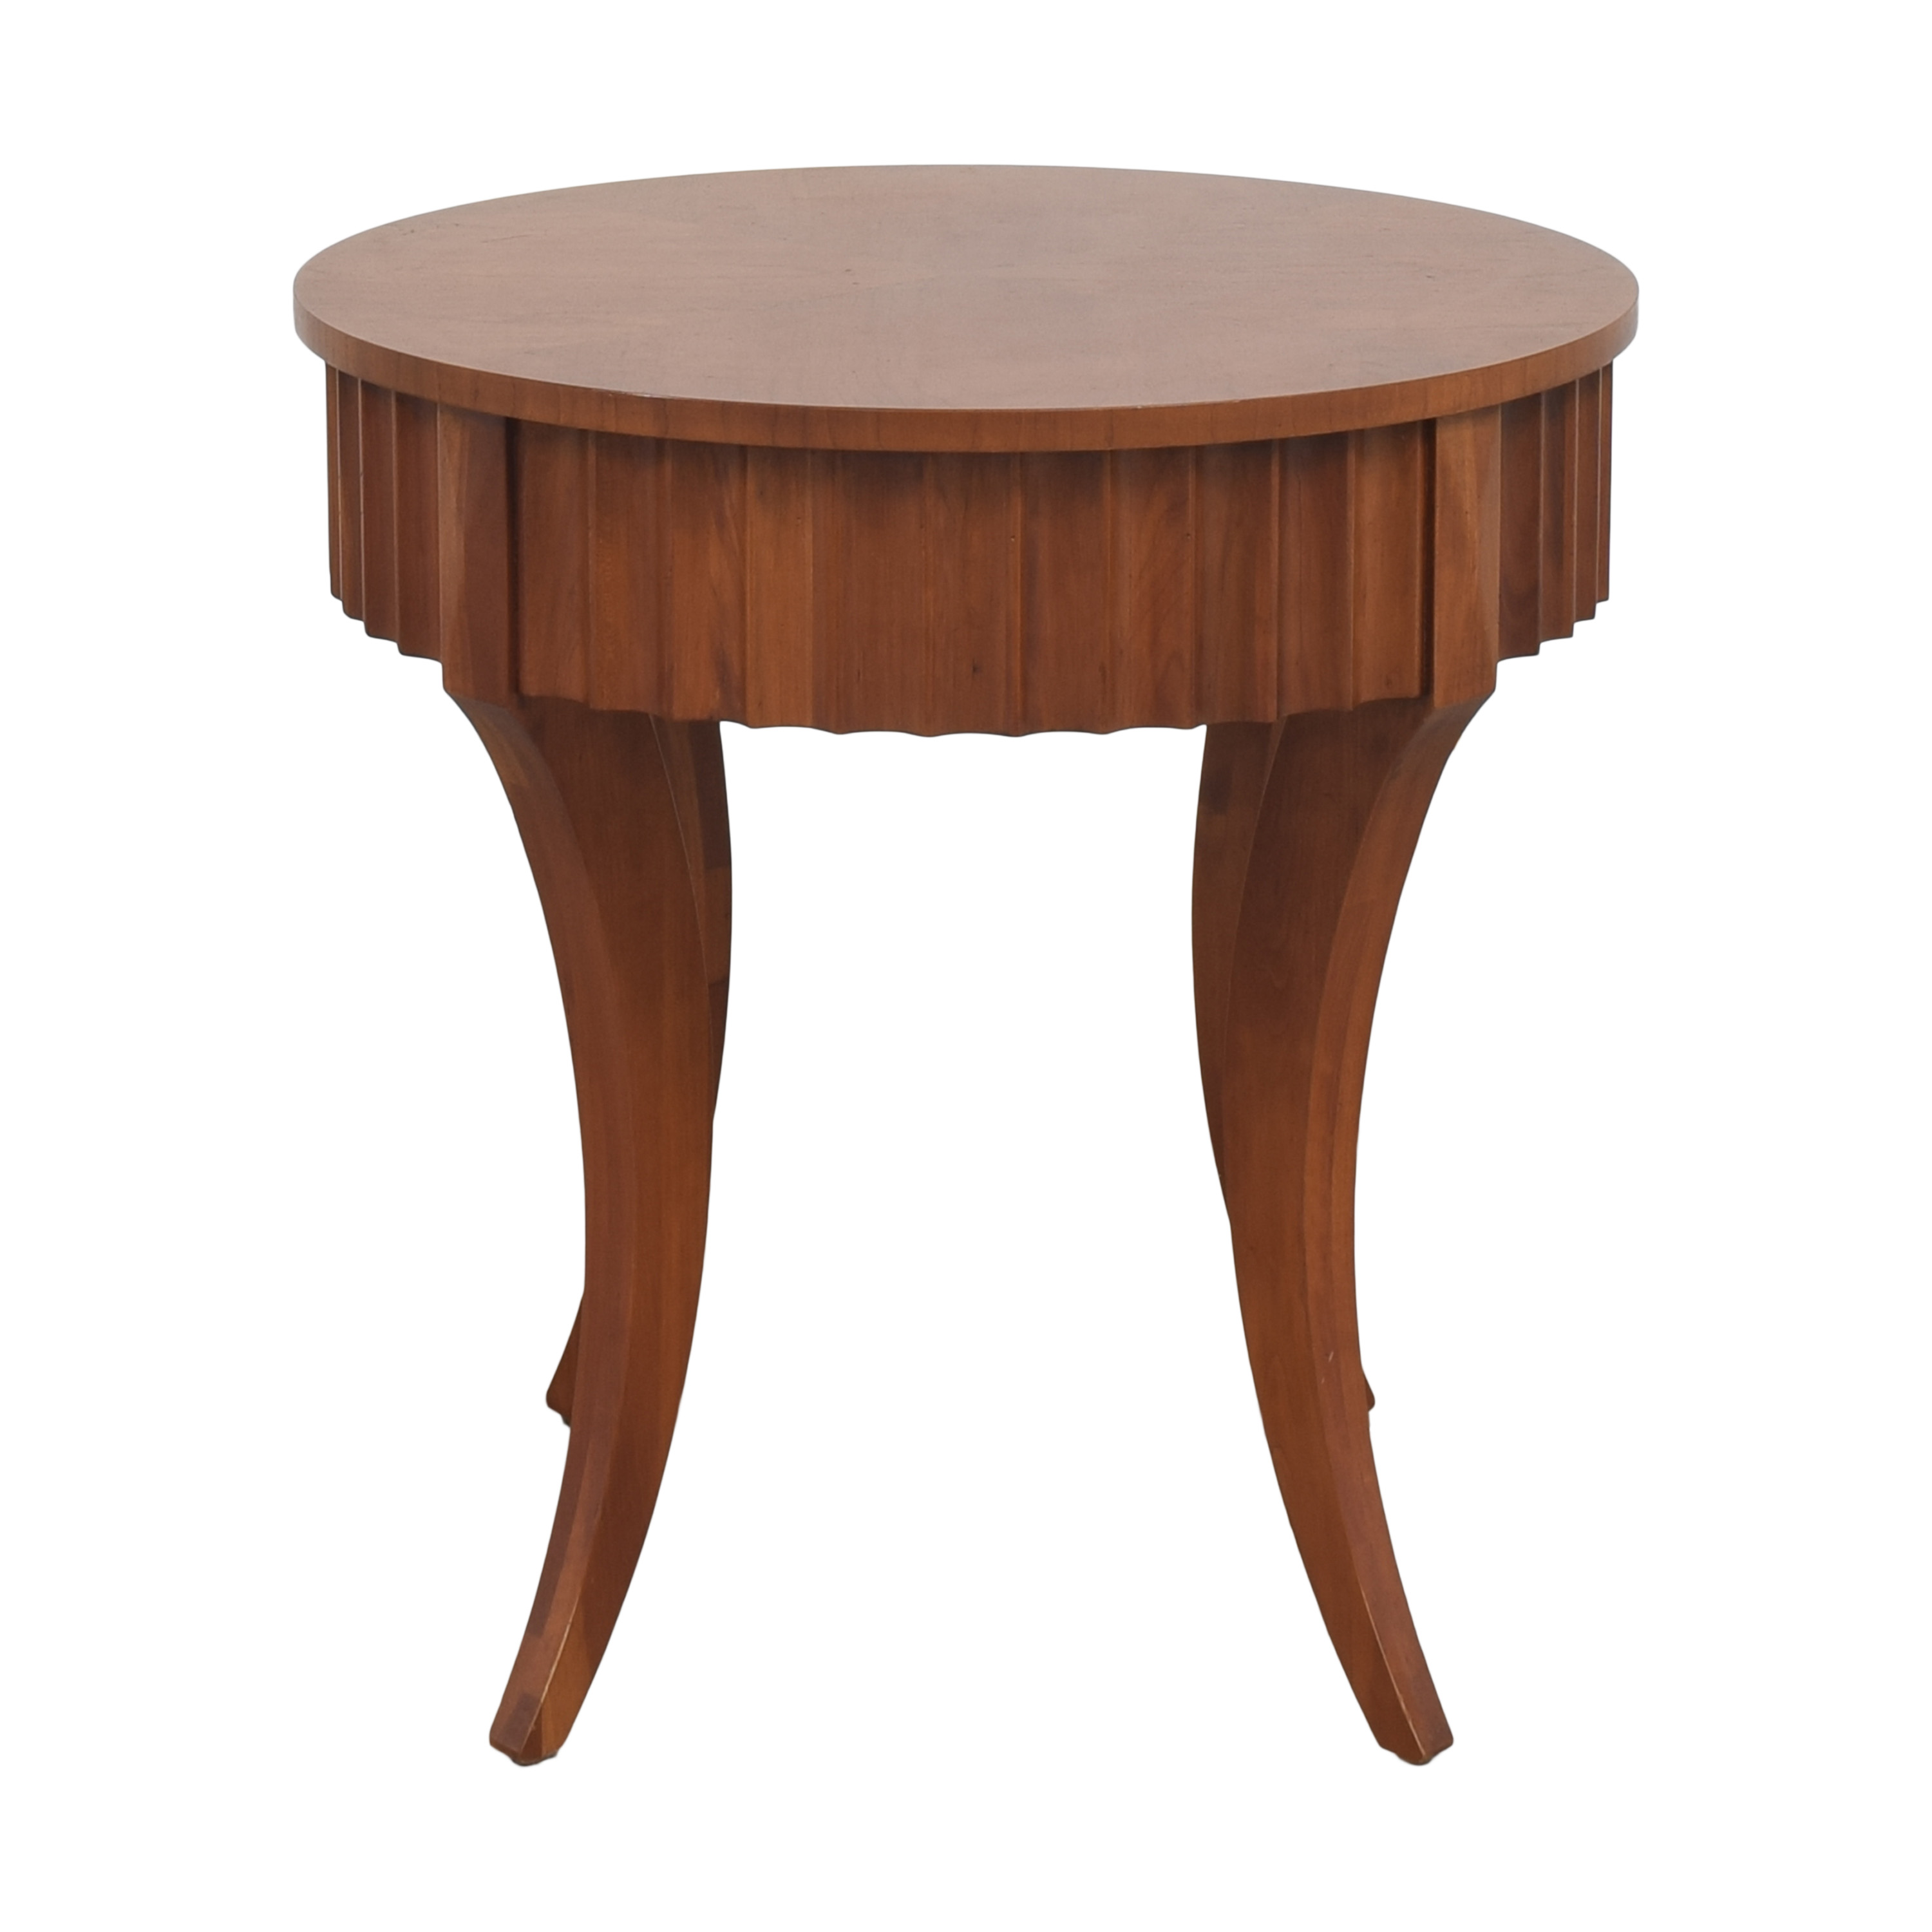 Ethan Allen Ethan Allen Avenue Round End Table ct